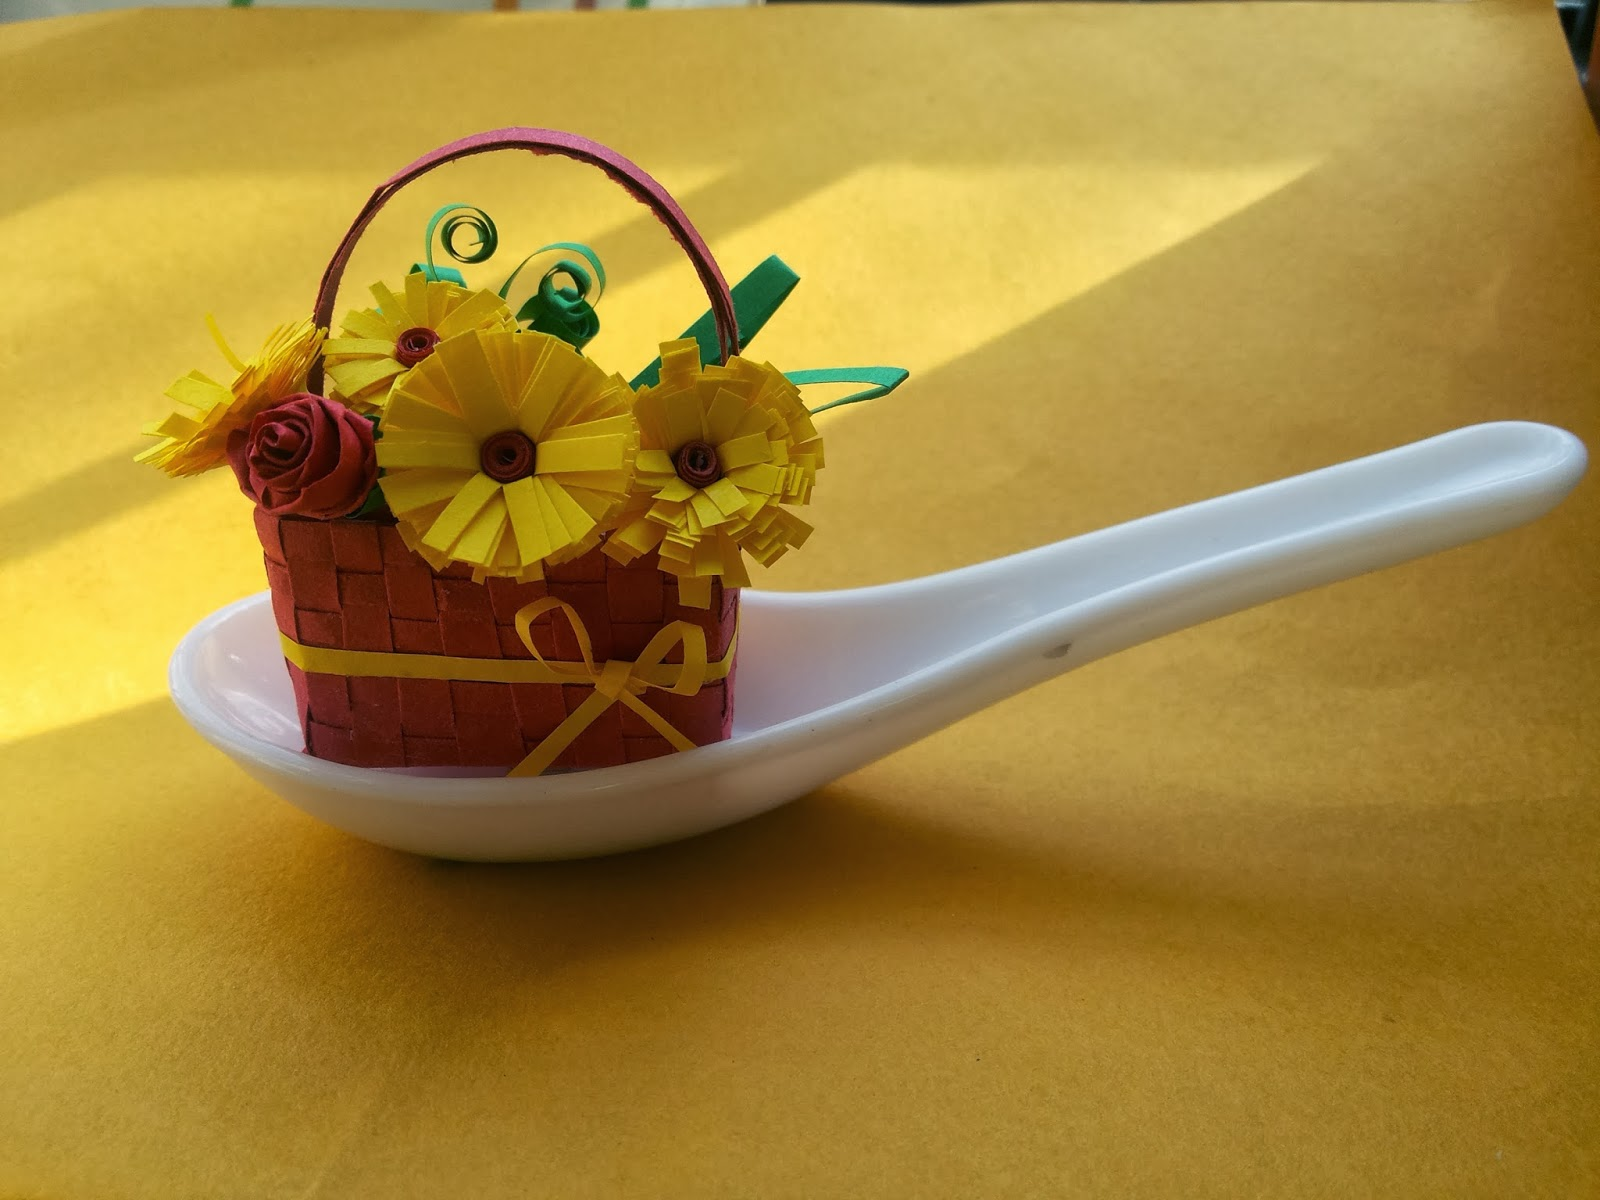 http://quillingzone.blogspot.tw/2014/02/hmmagain-to-3d-miniatures-flower-basket.html